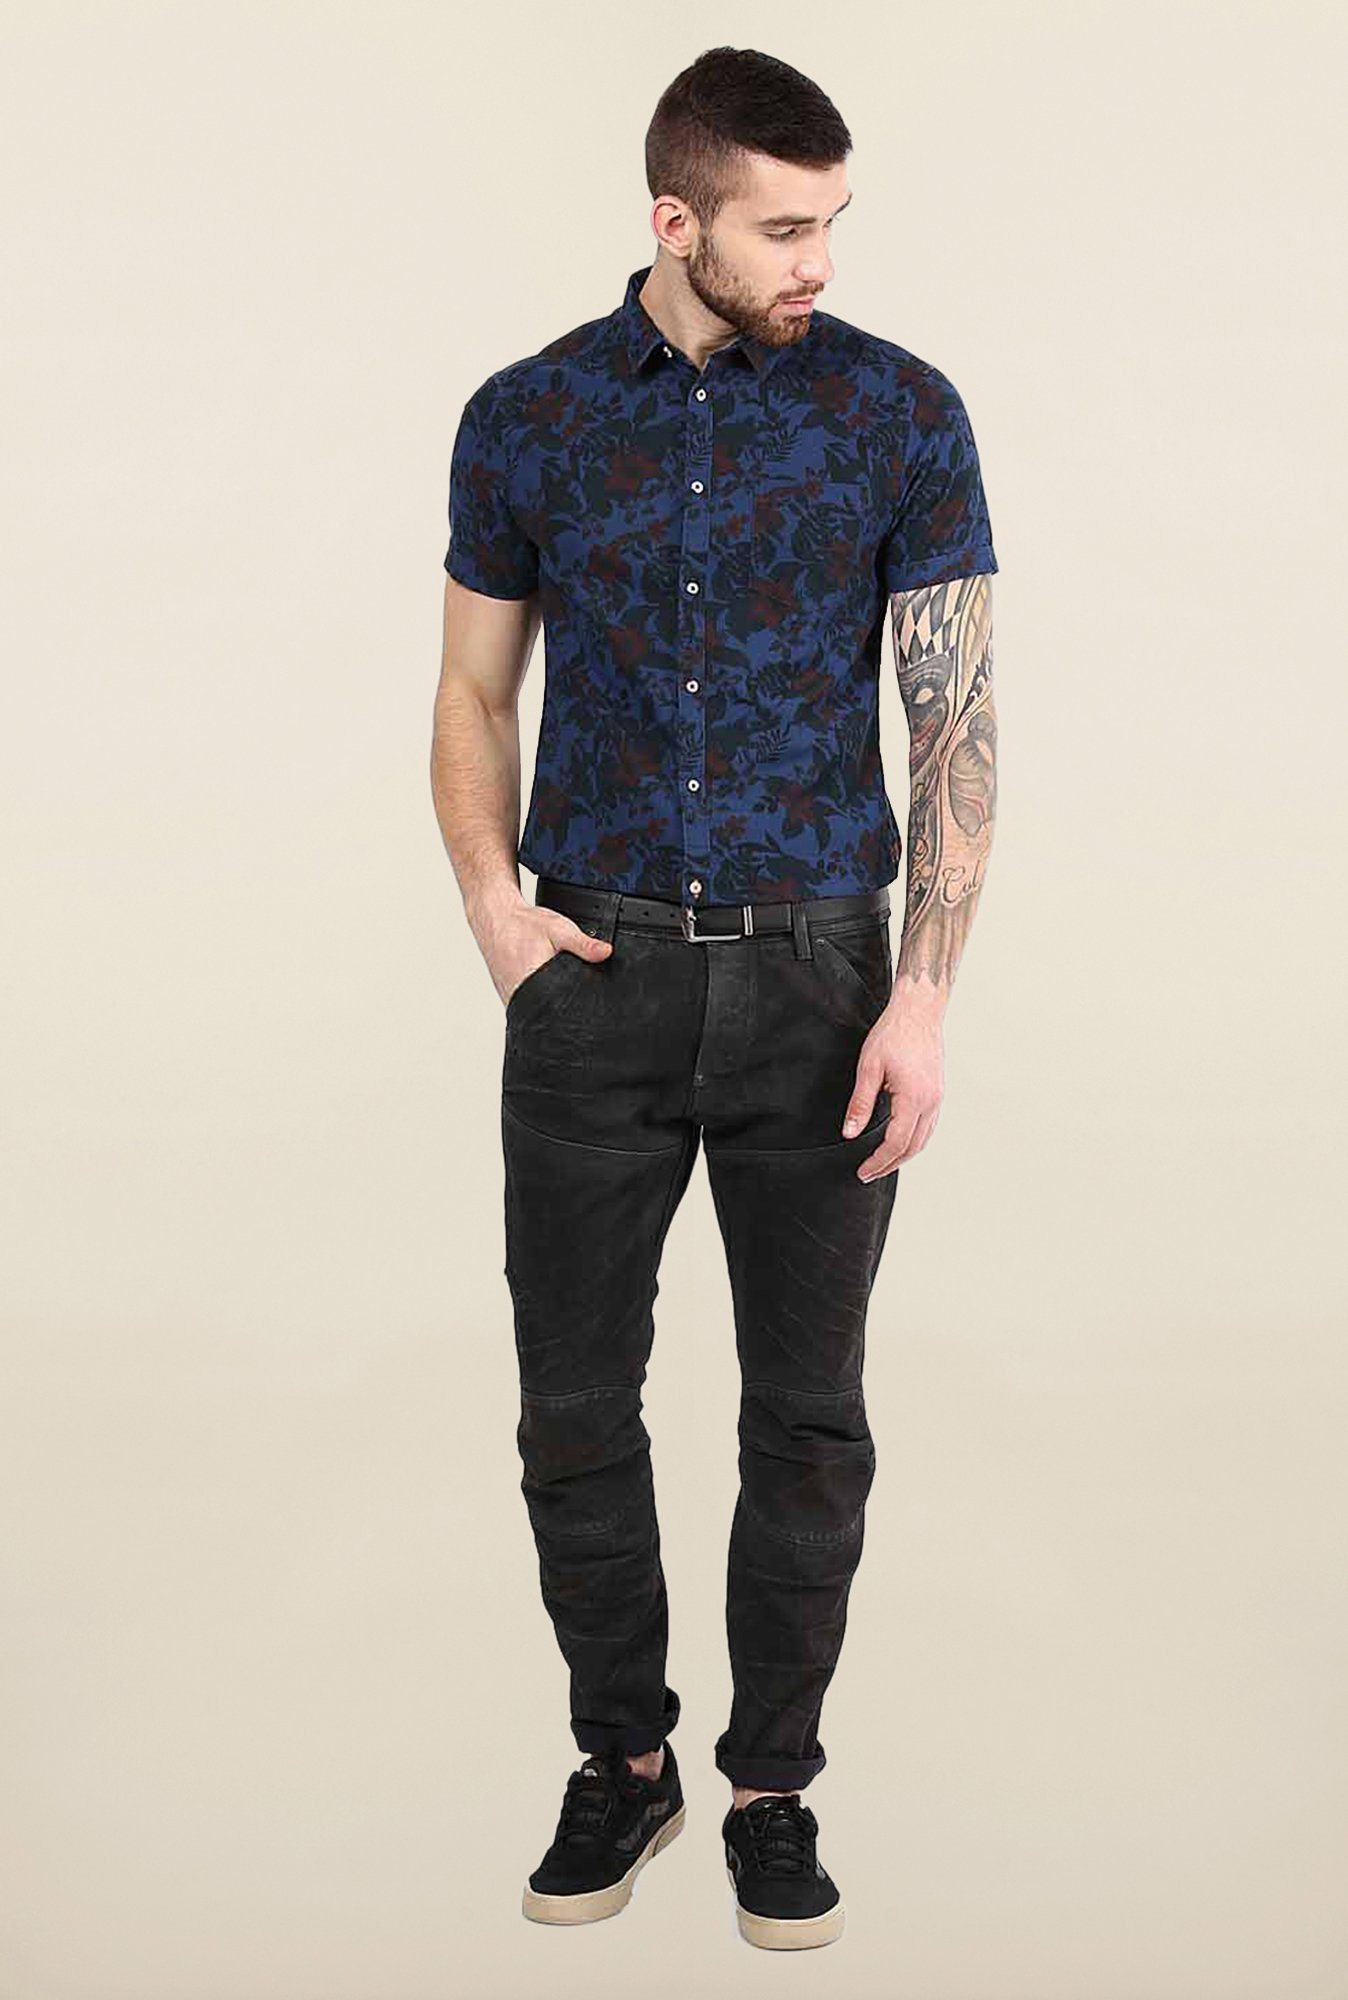 Jack & Jones Dark Blue Floral Print Casual Shirt